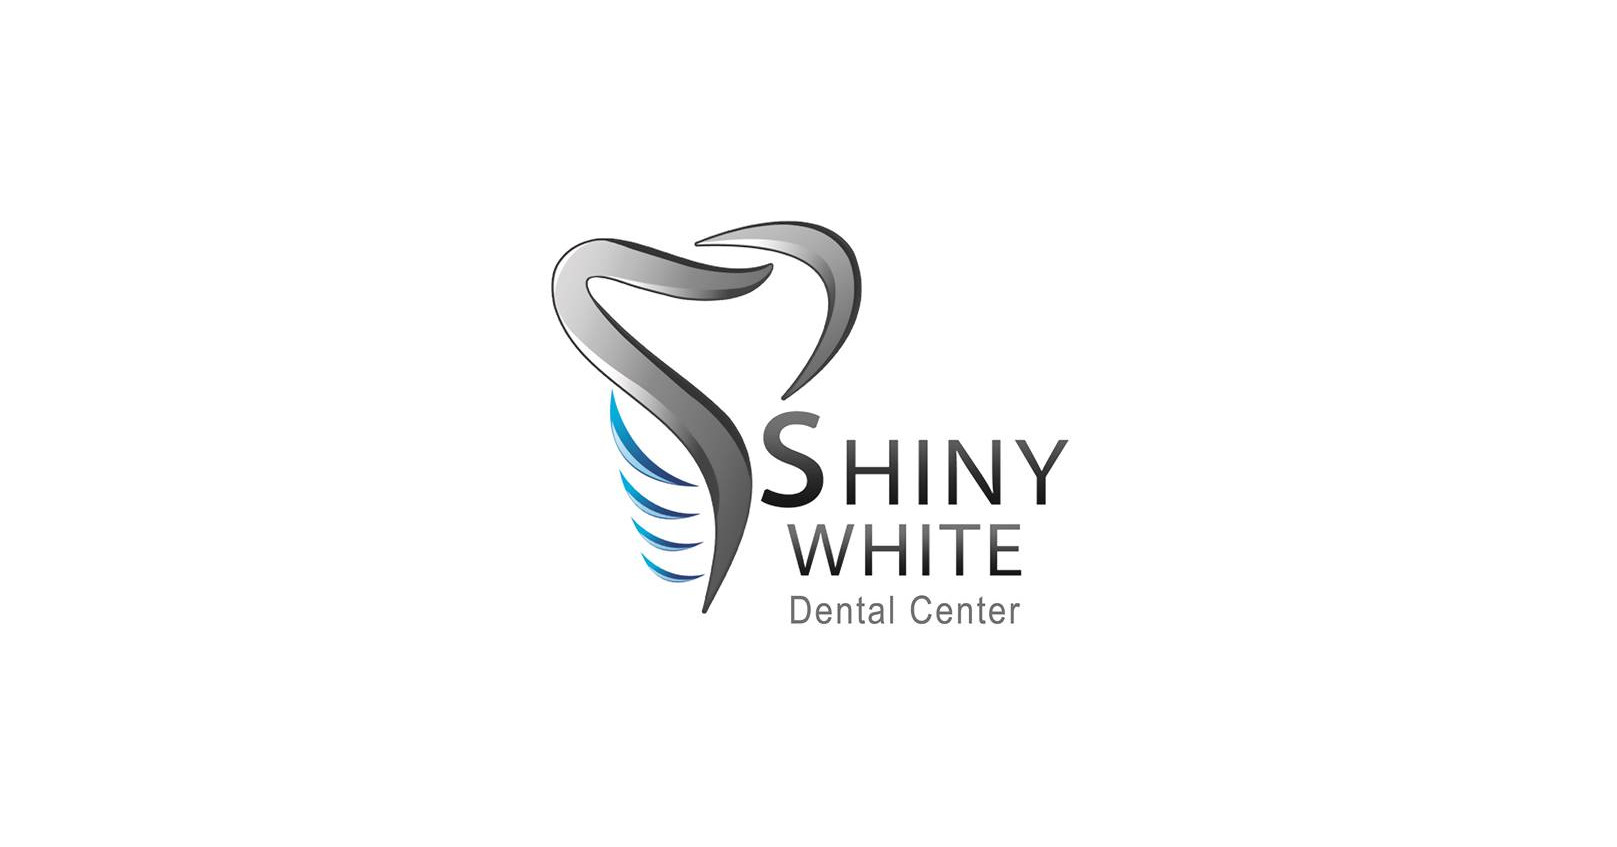 صورة Job: Diagnosis Consultant – Dentist (Long Term Contract) at Shiny white dental center in Cairo, Egypt